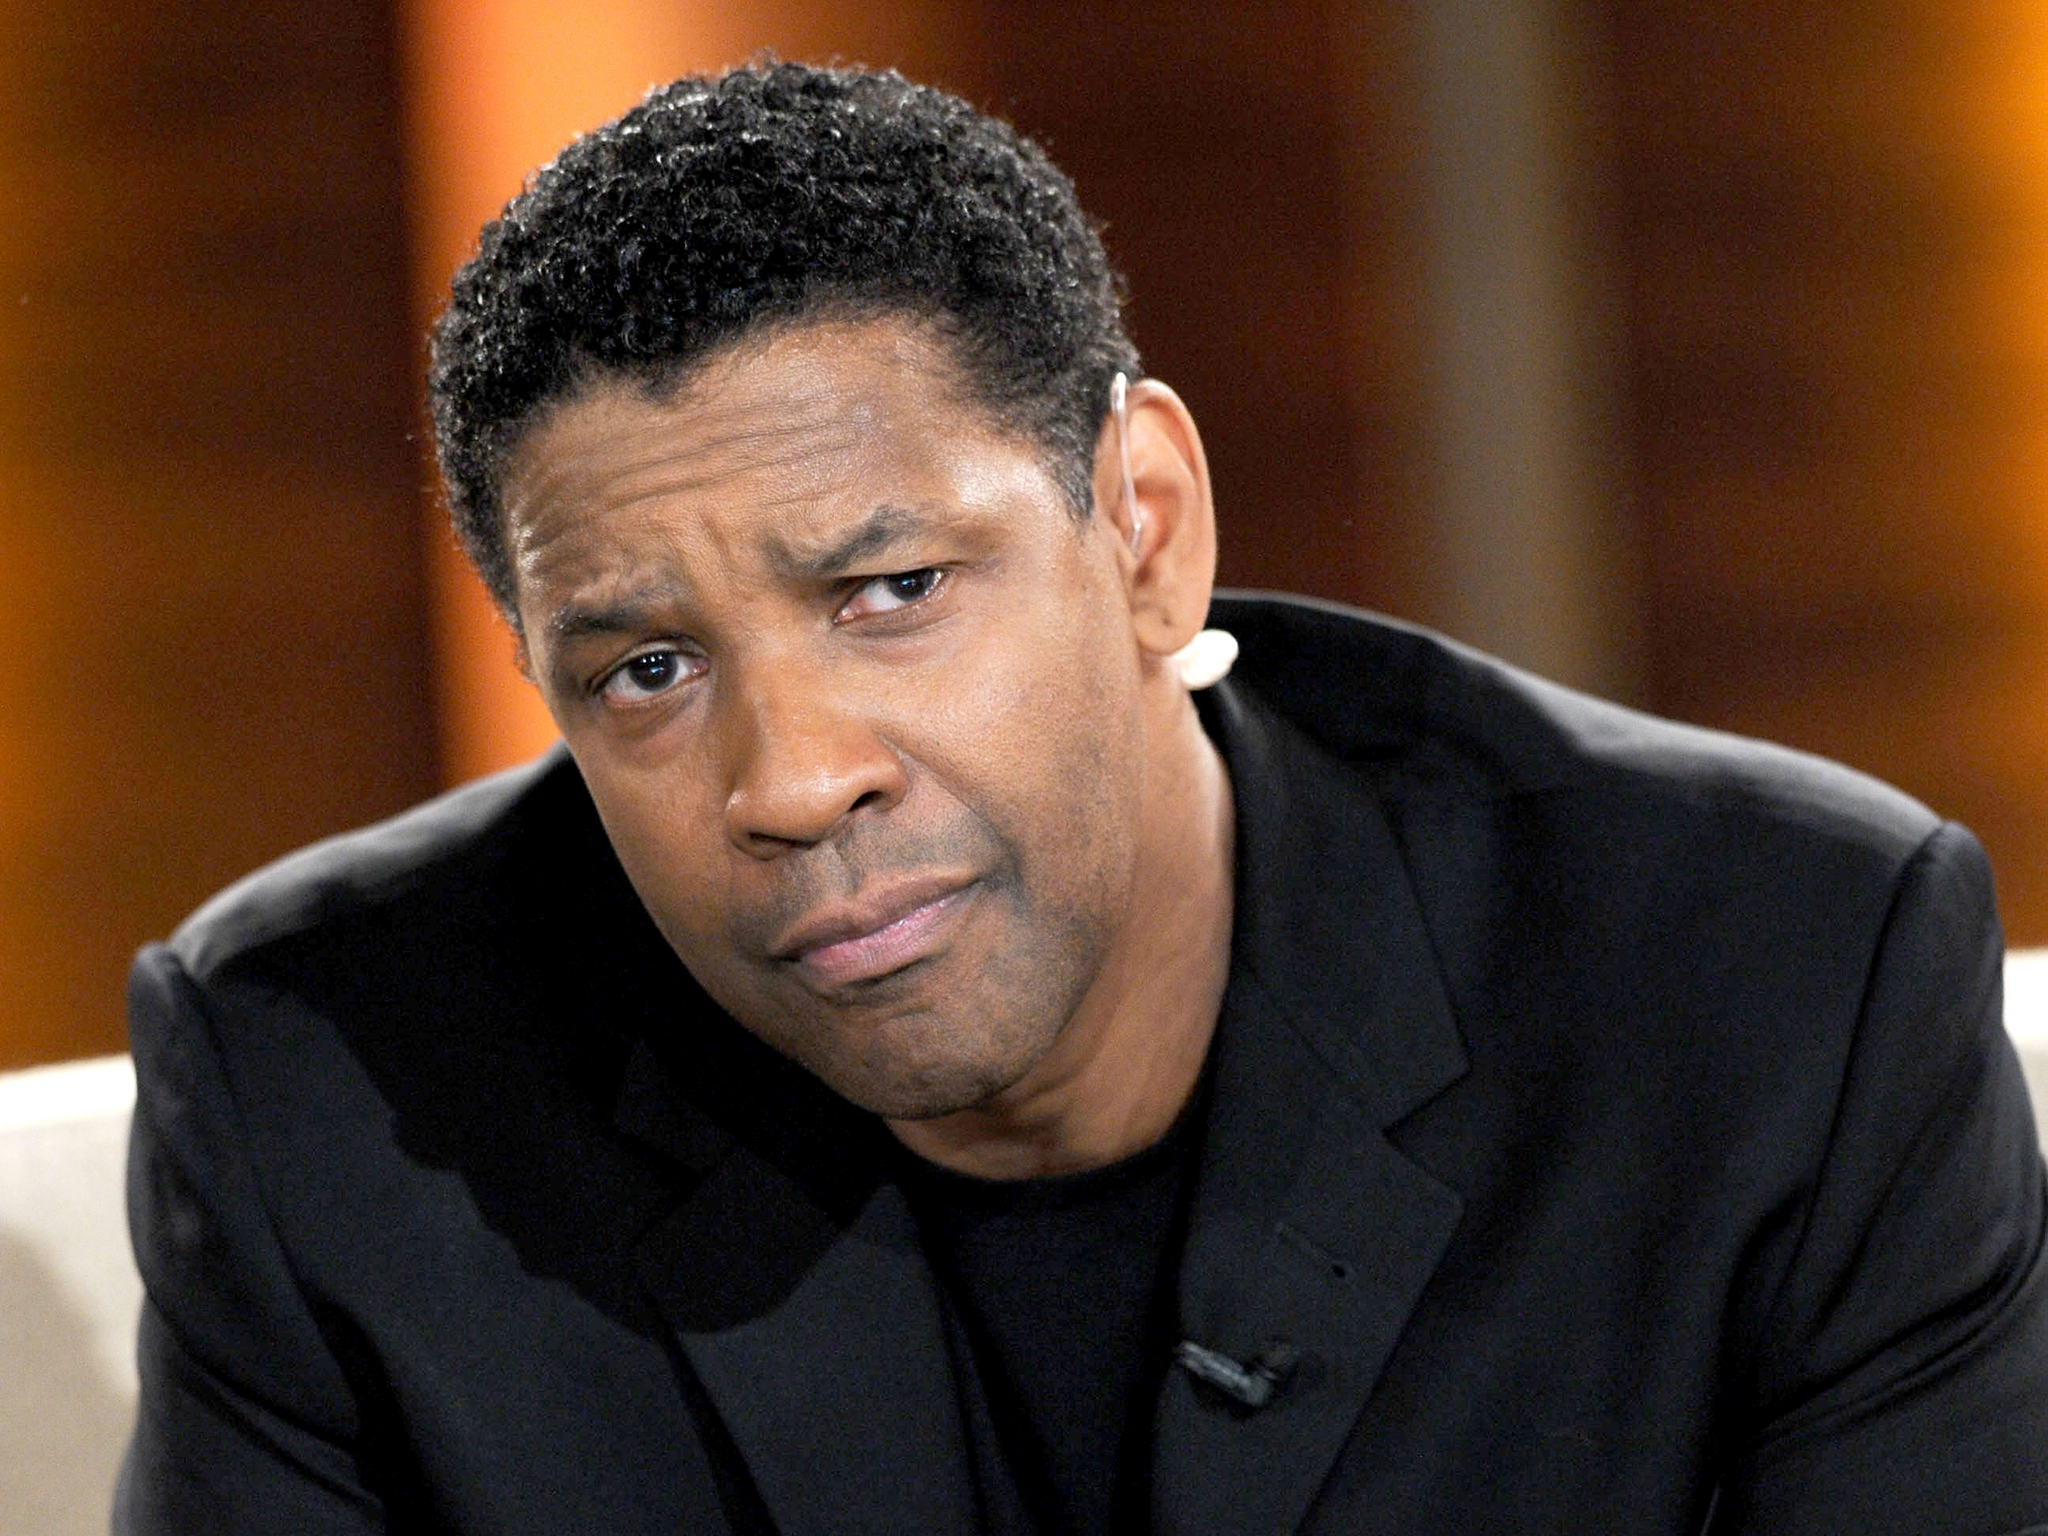 Denzel Washington – $200m